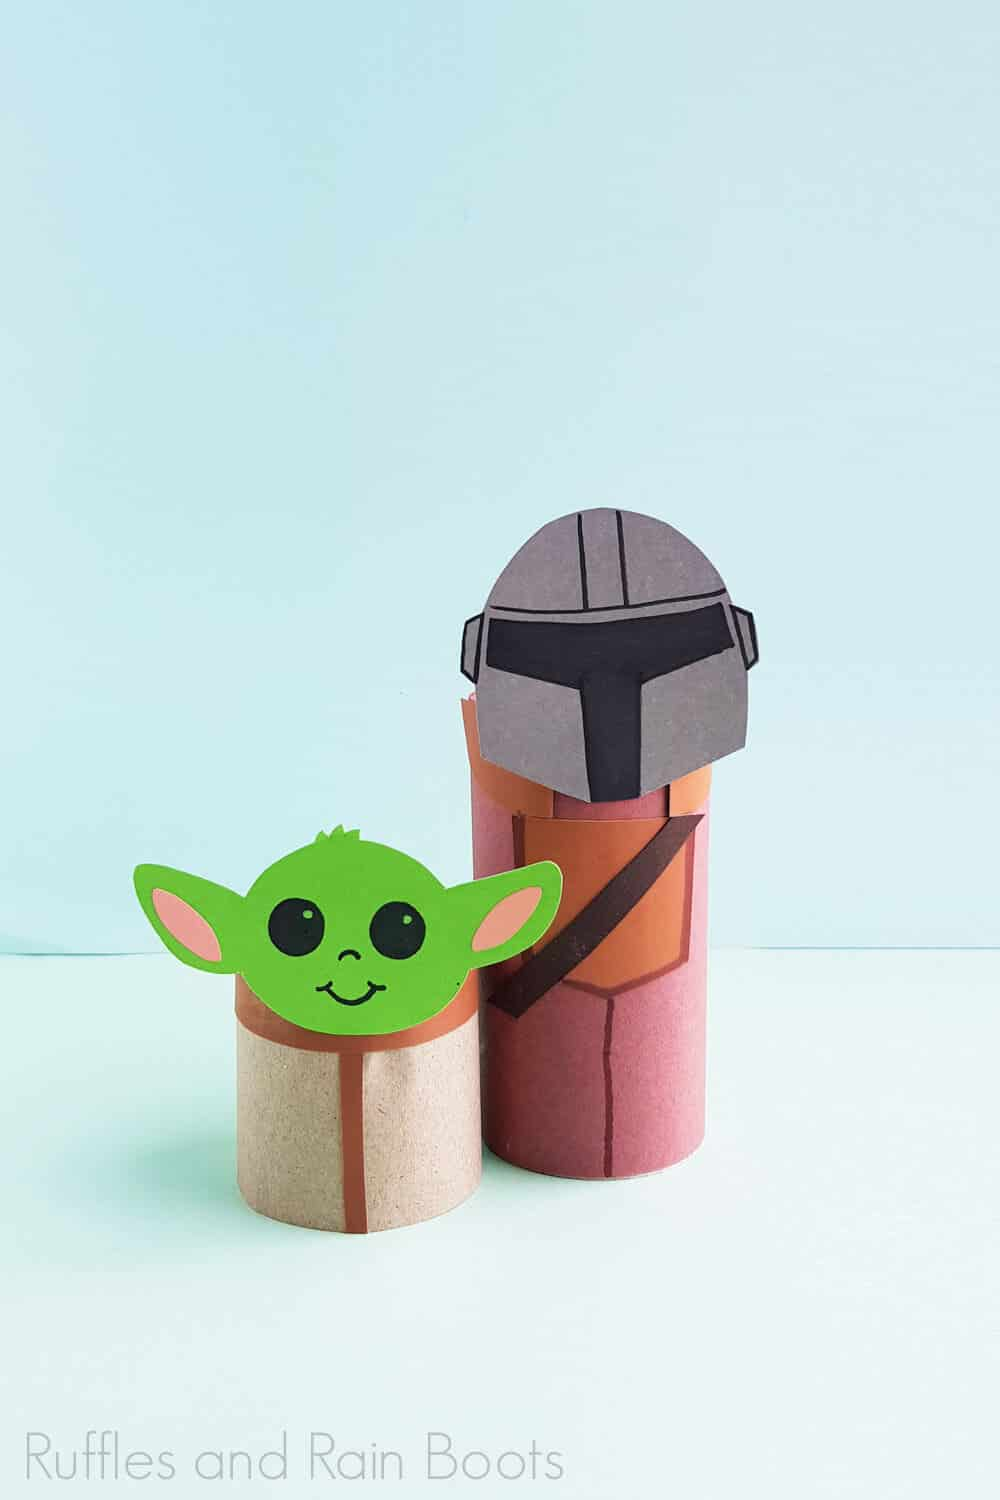 Vertical Image of finished Baby Yoda and the mandalorian paper craft on a light blue and green backgound